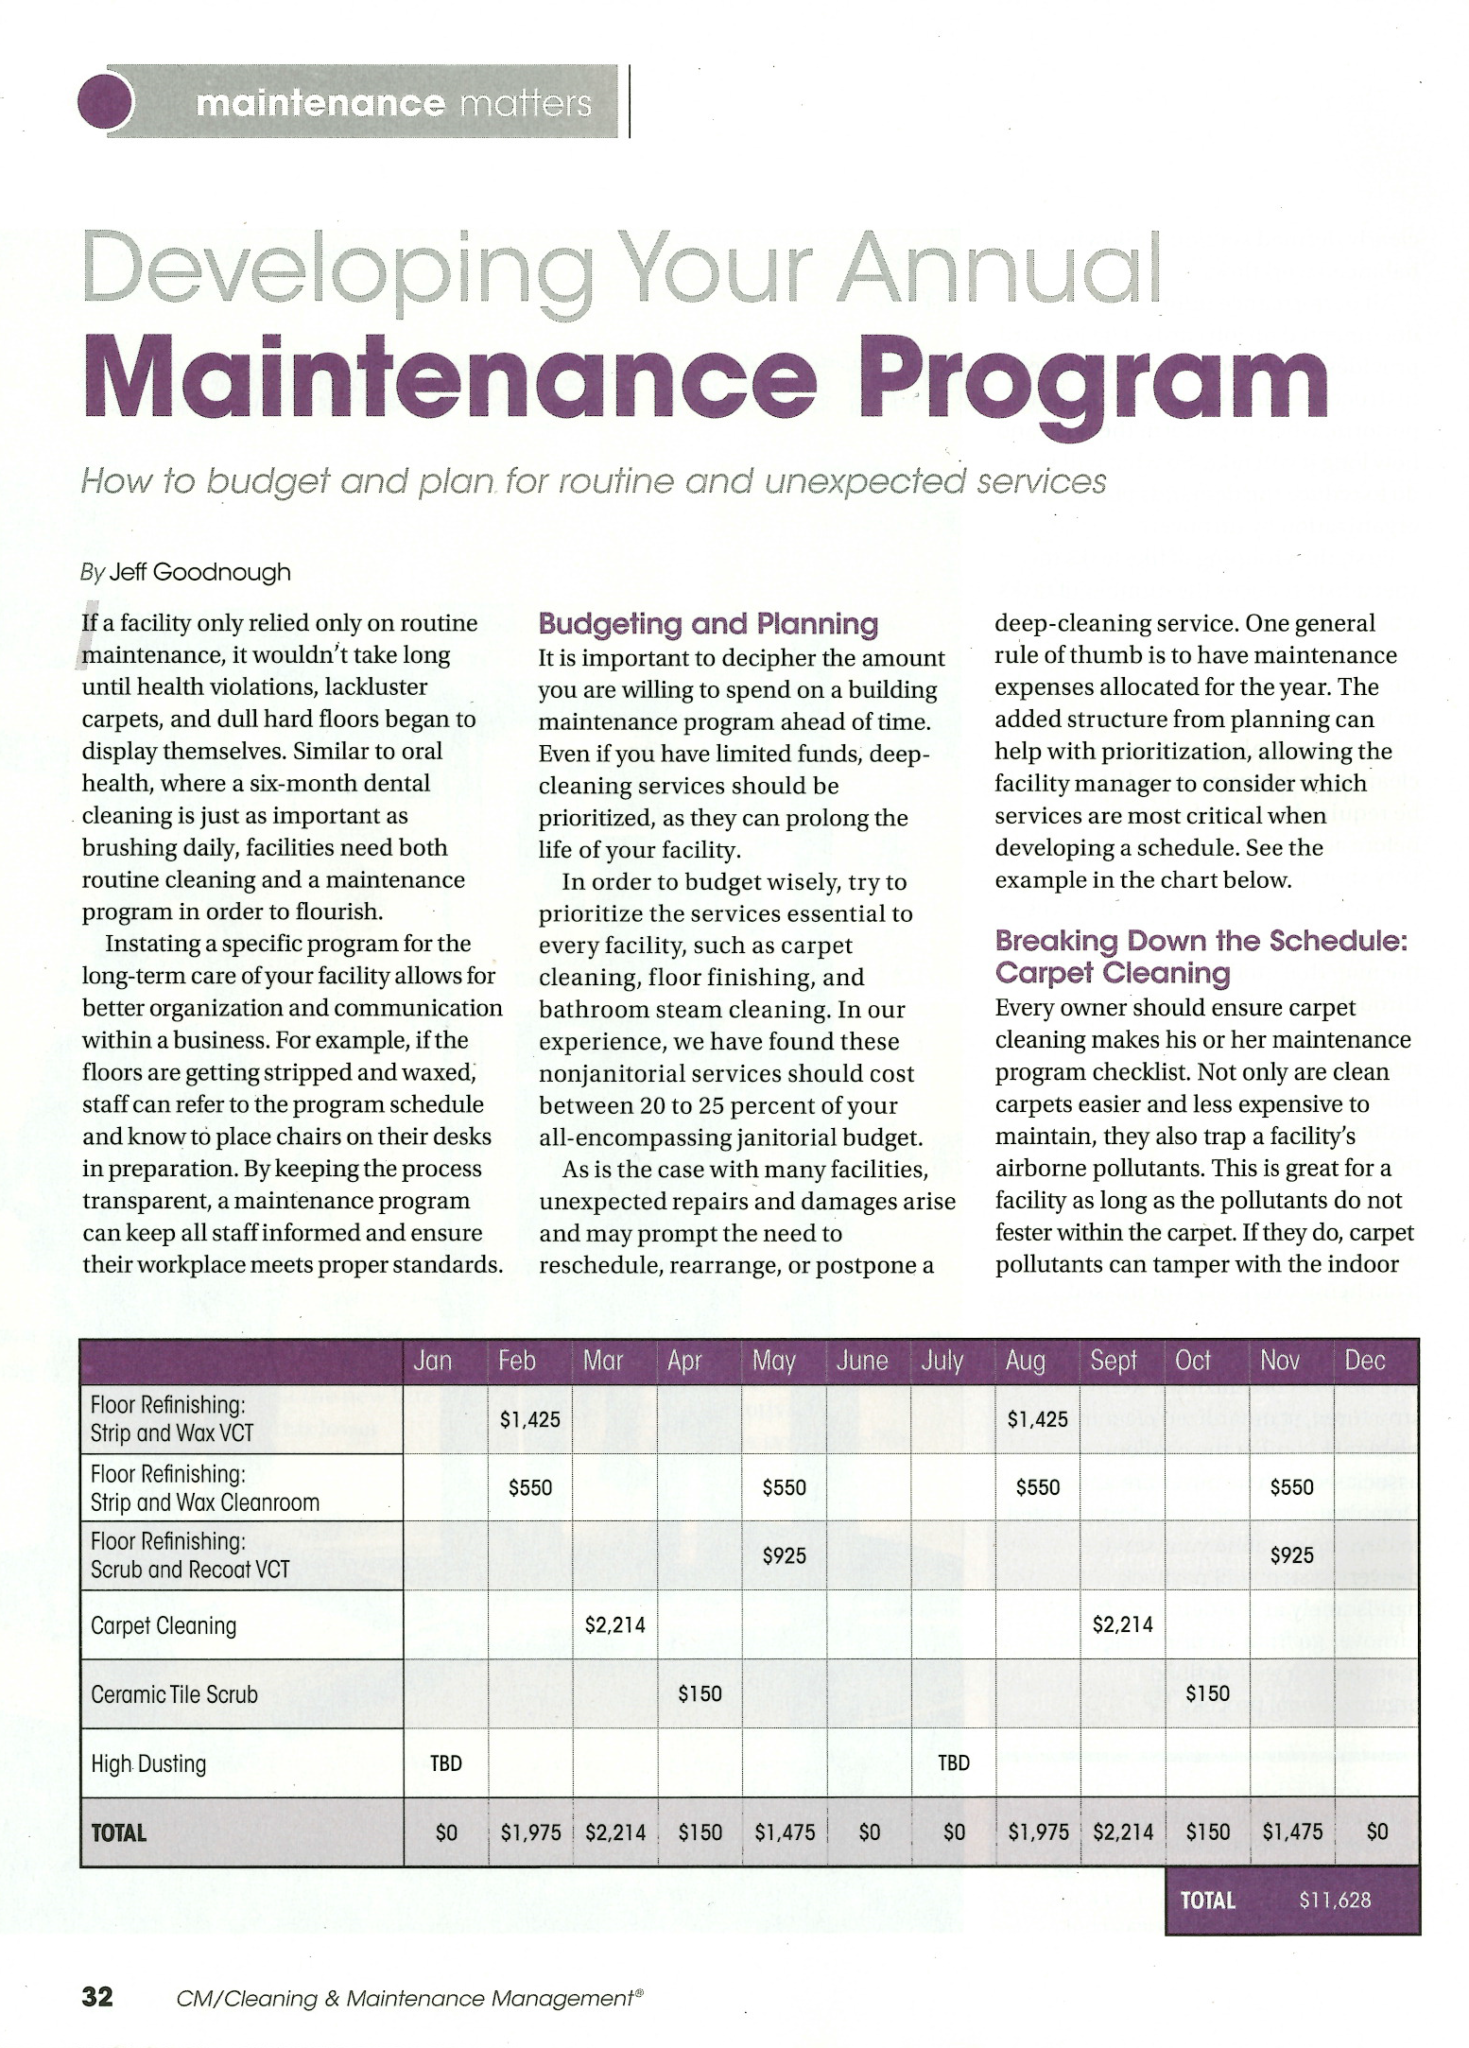 page 1 image Developoing your annual maintenance program